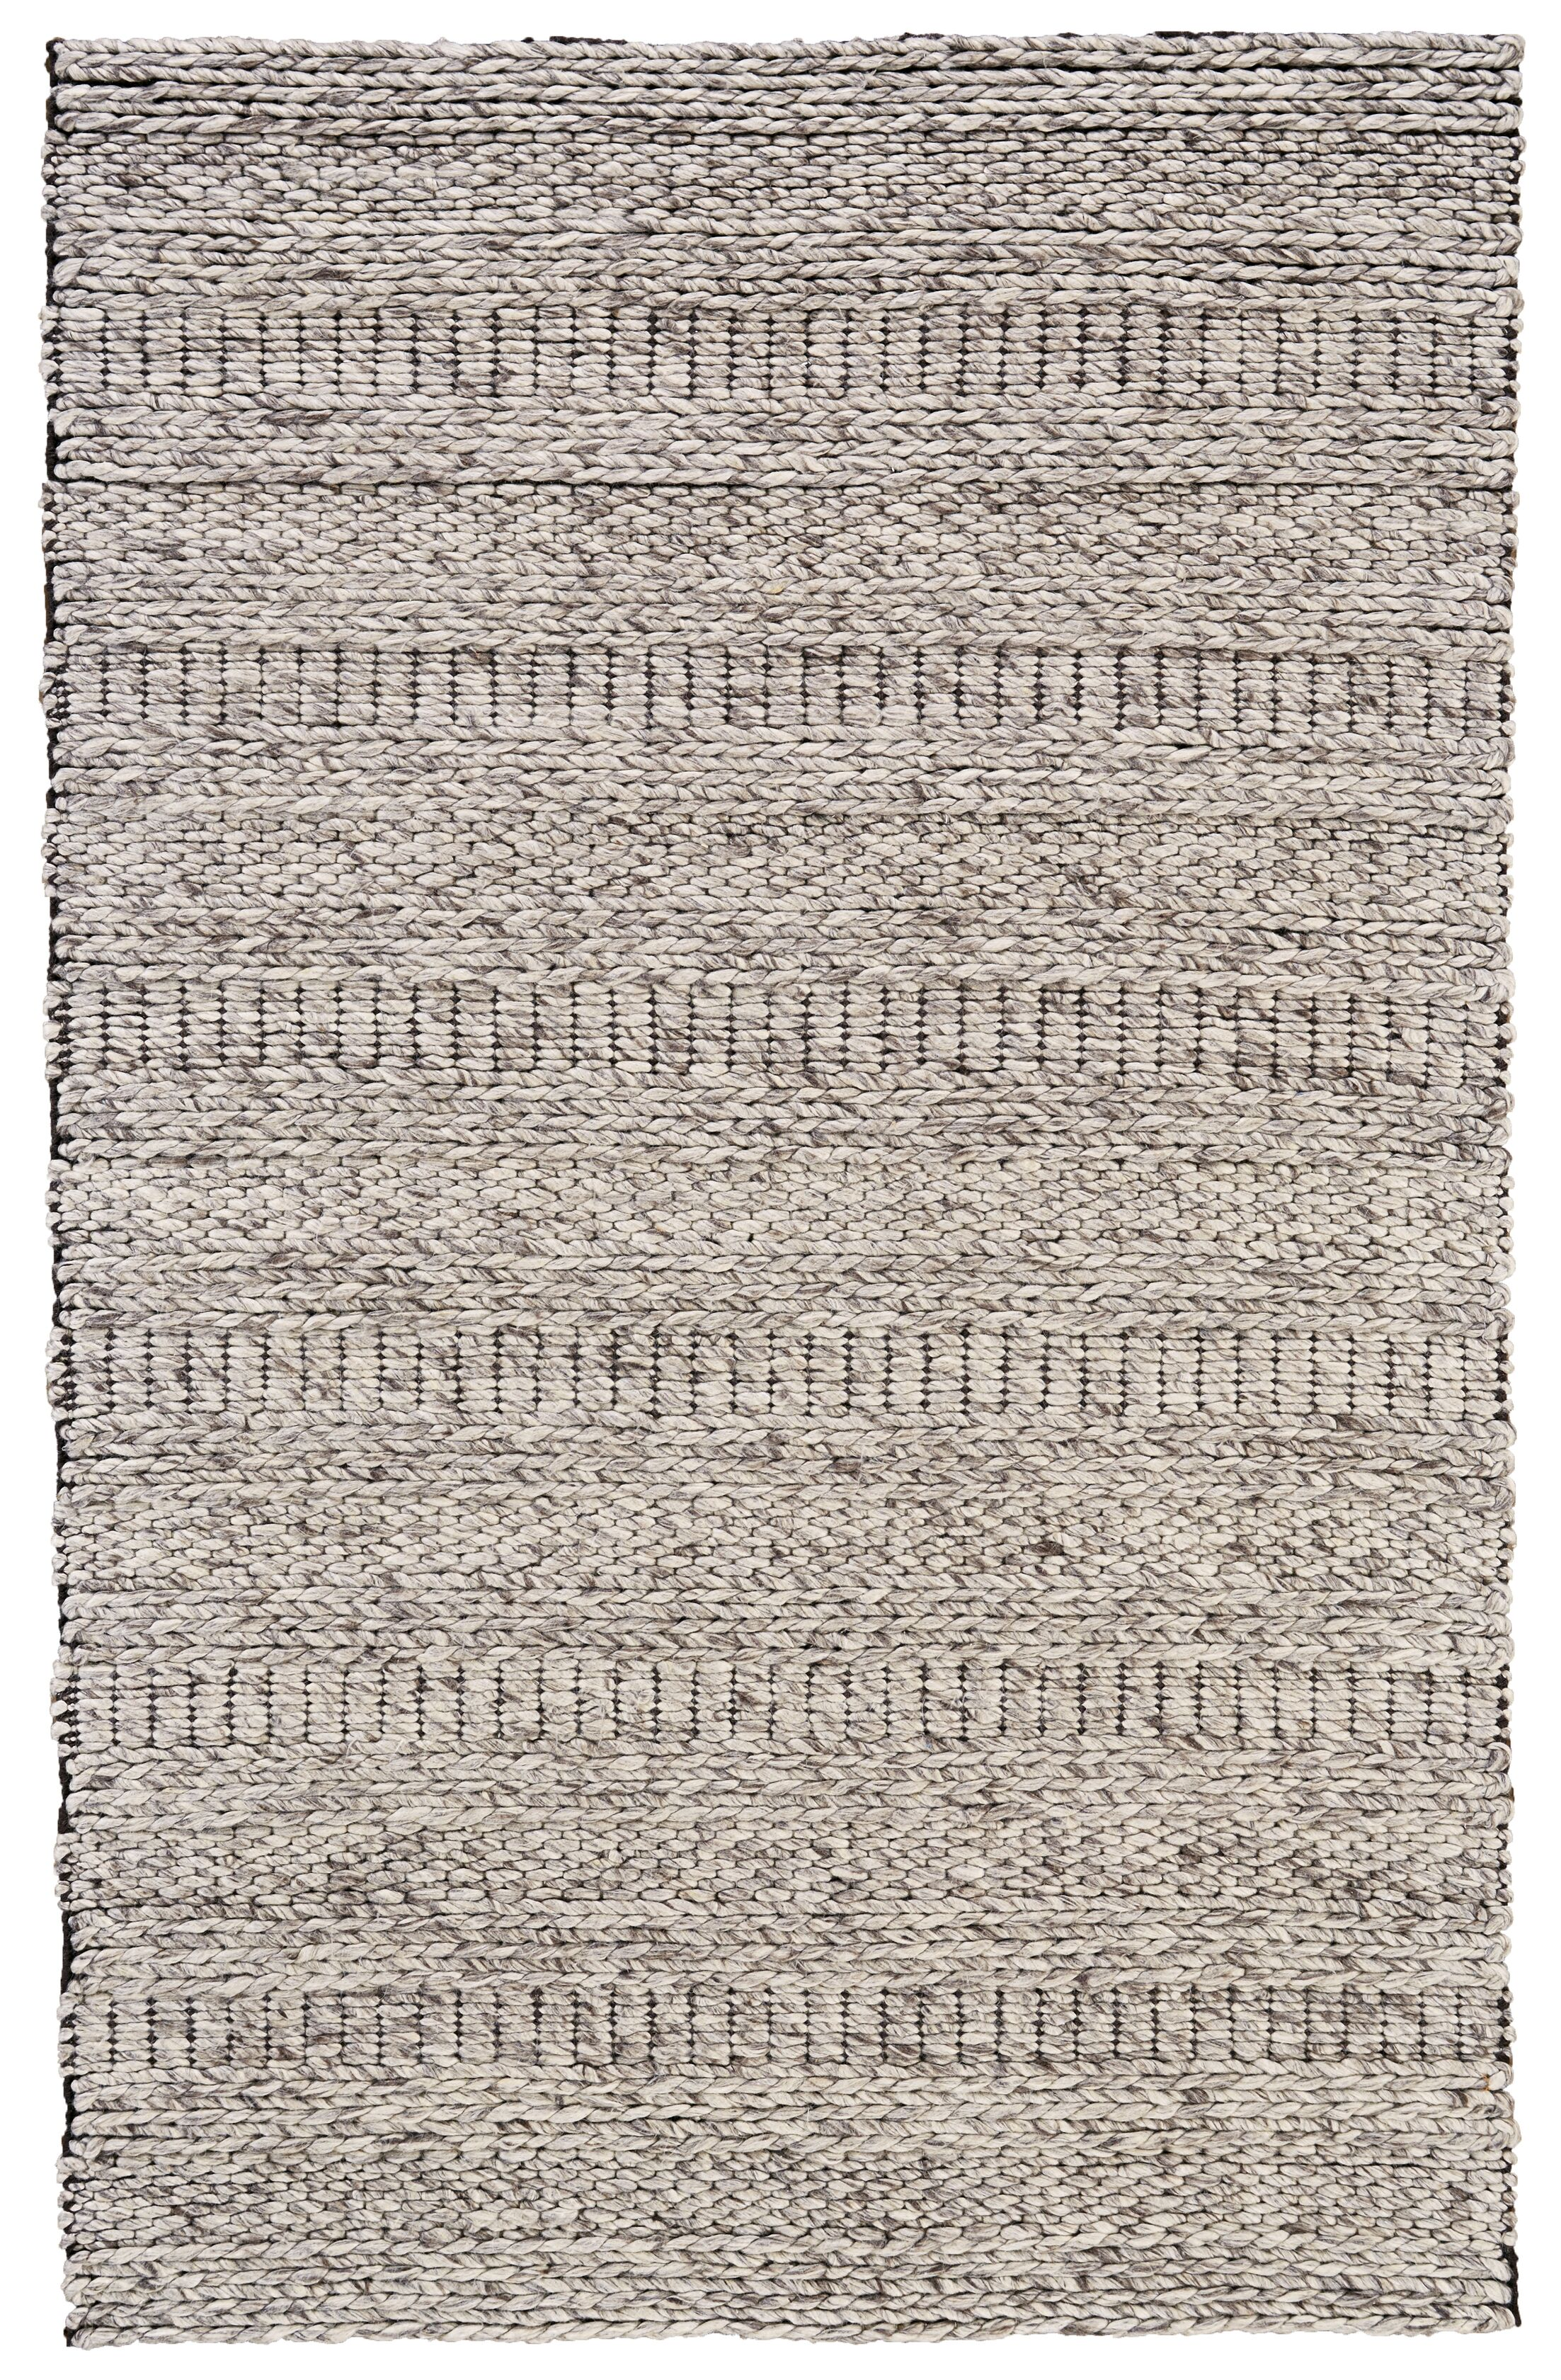 Mcmurry Hand-Woven Wool Oatmeal Area Rug Rug Size: Rectangle 5' x 8'